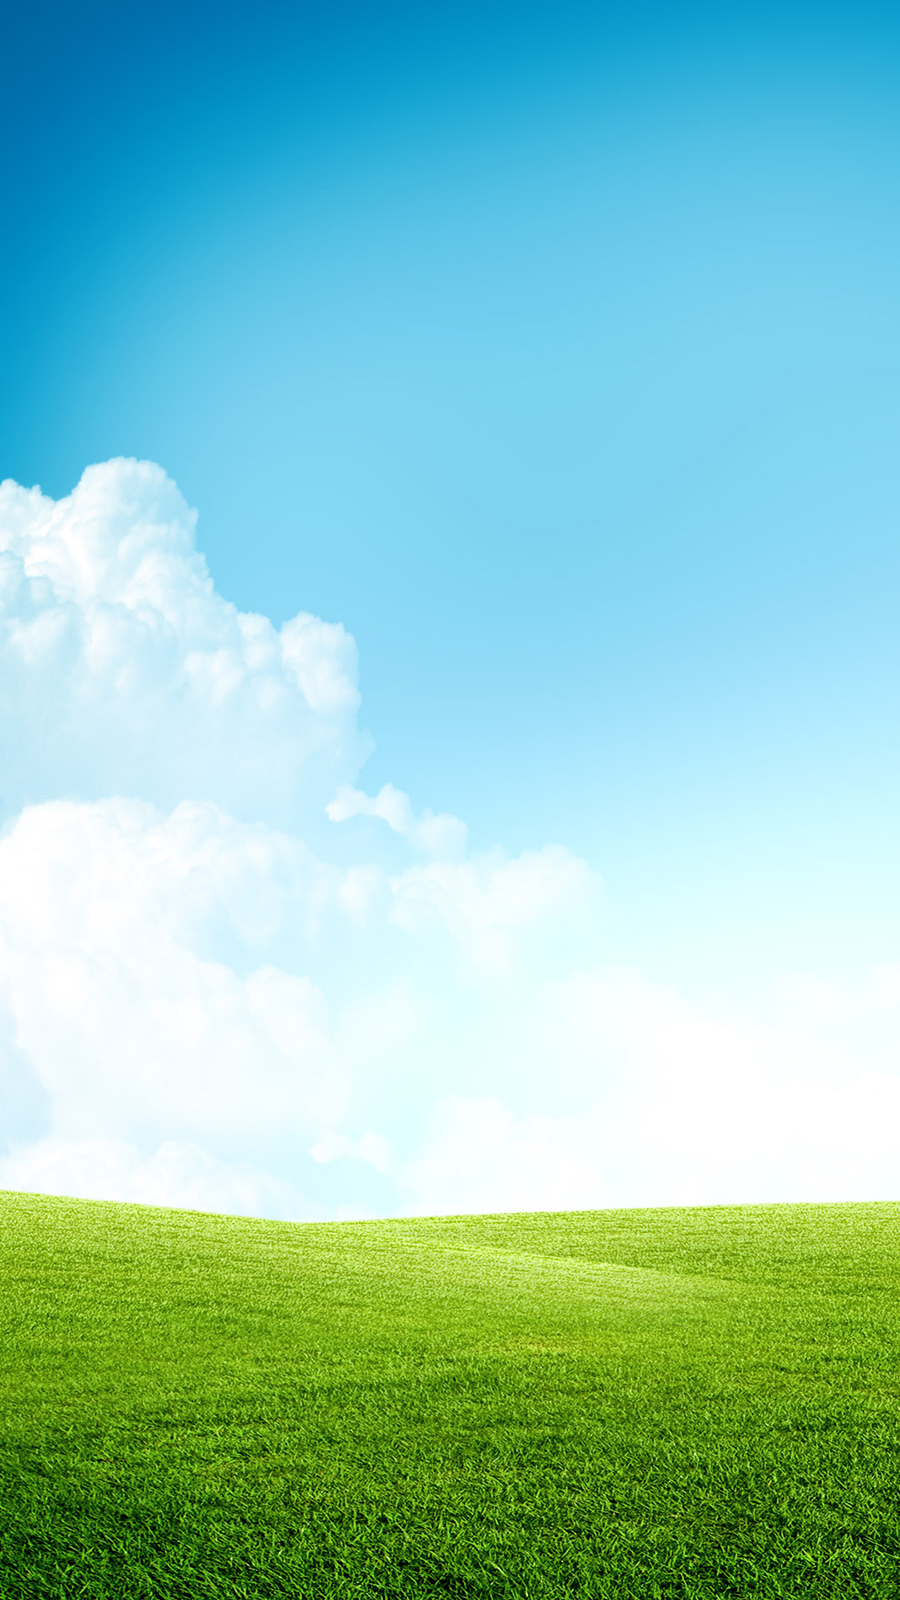 Grass Field Blue Sky Clouds Android Wallpaper